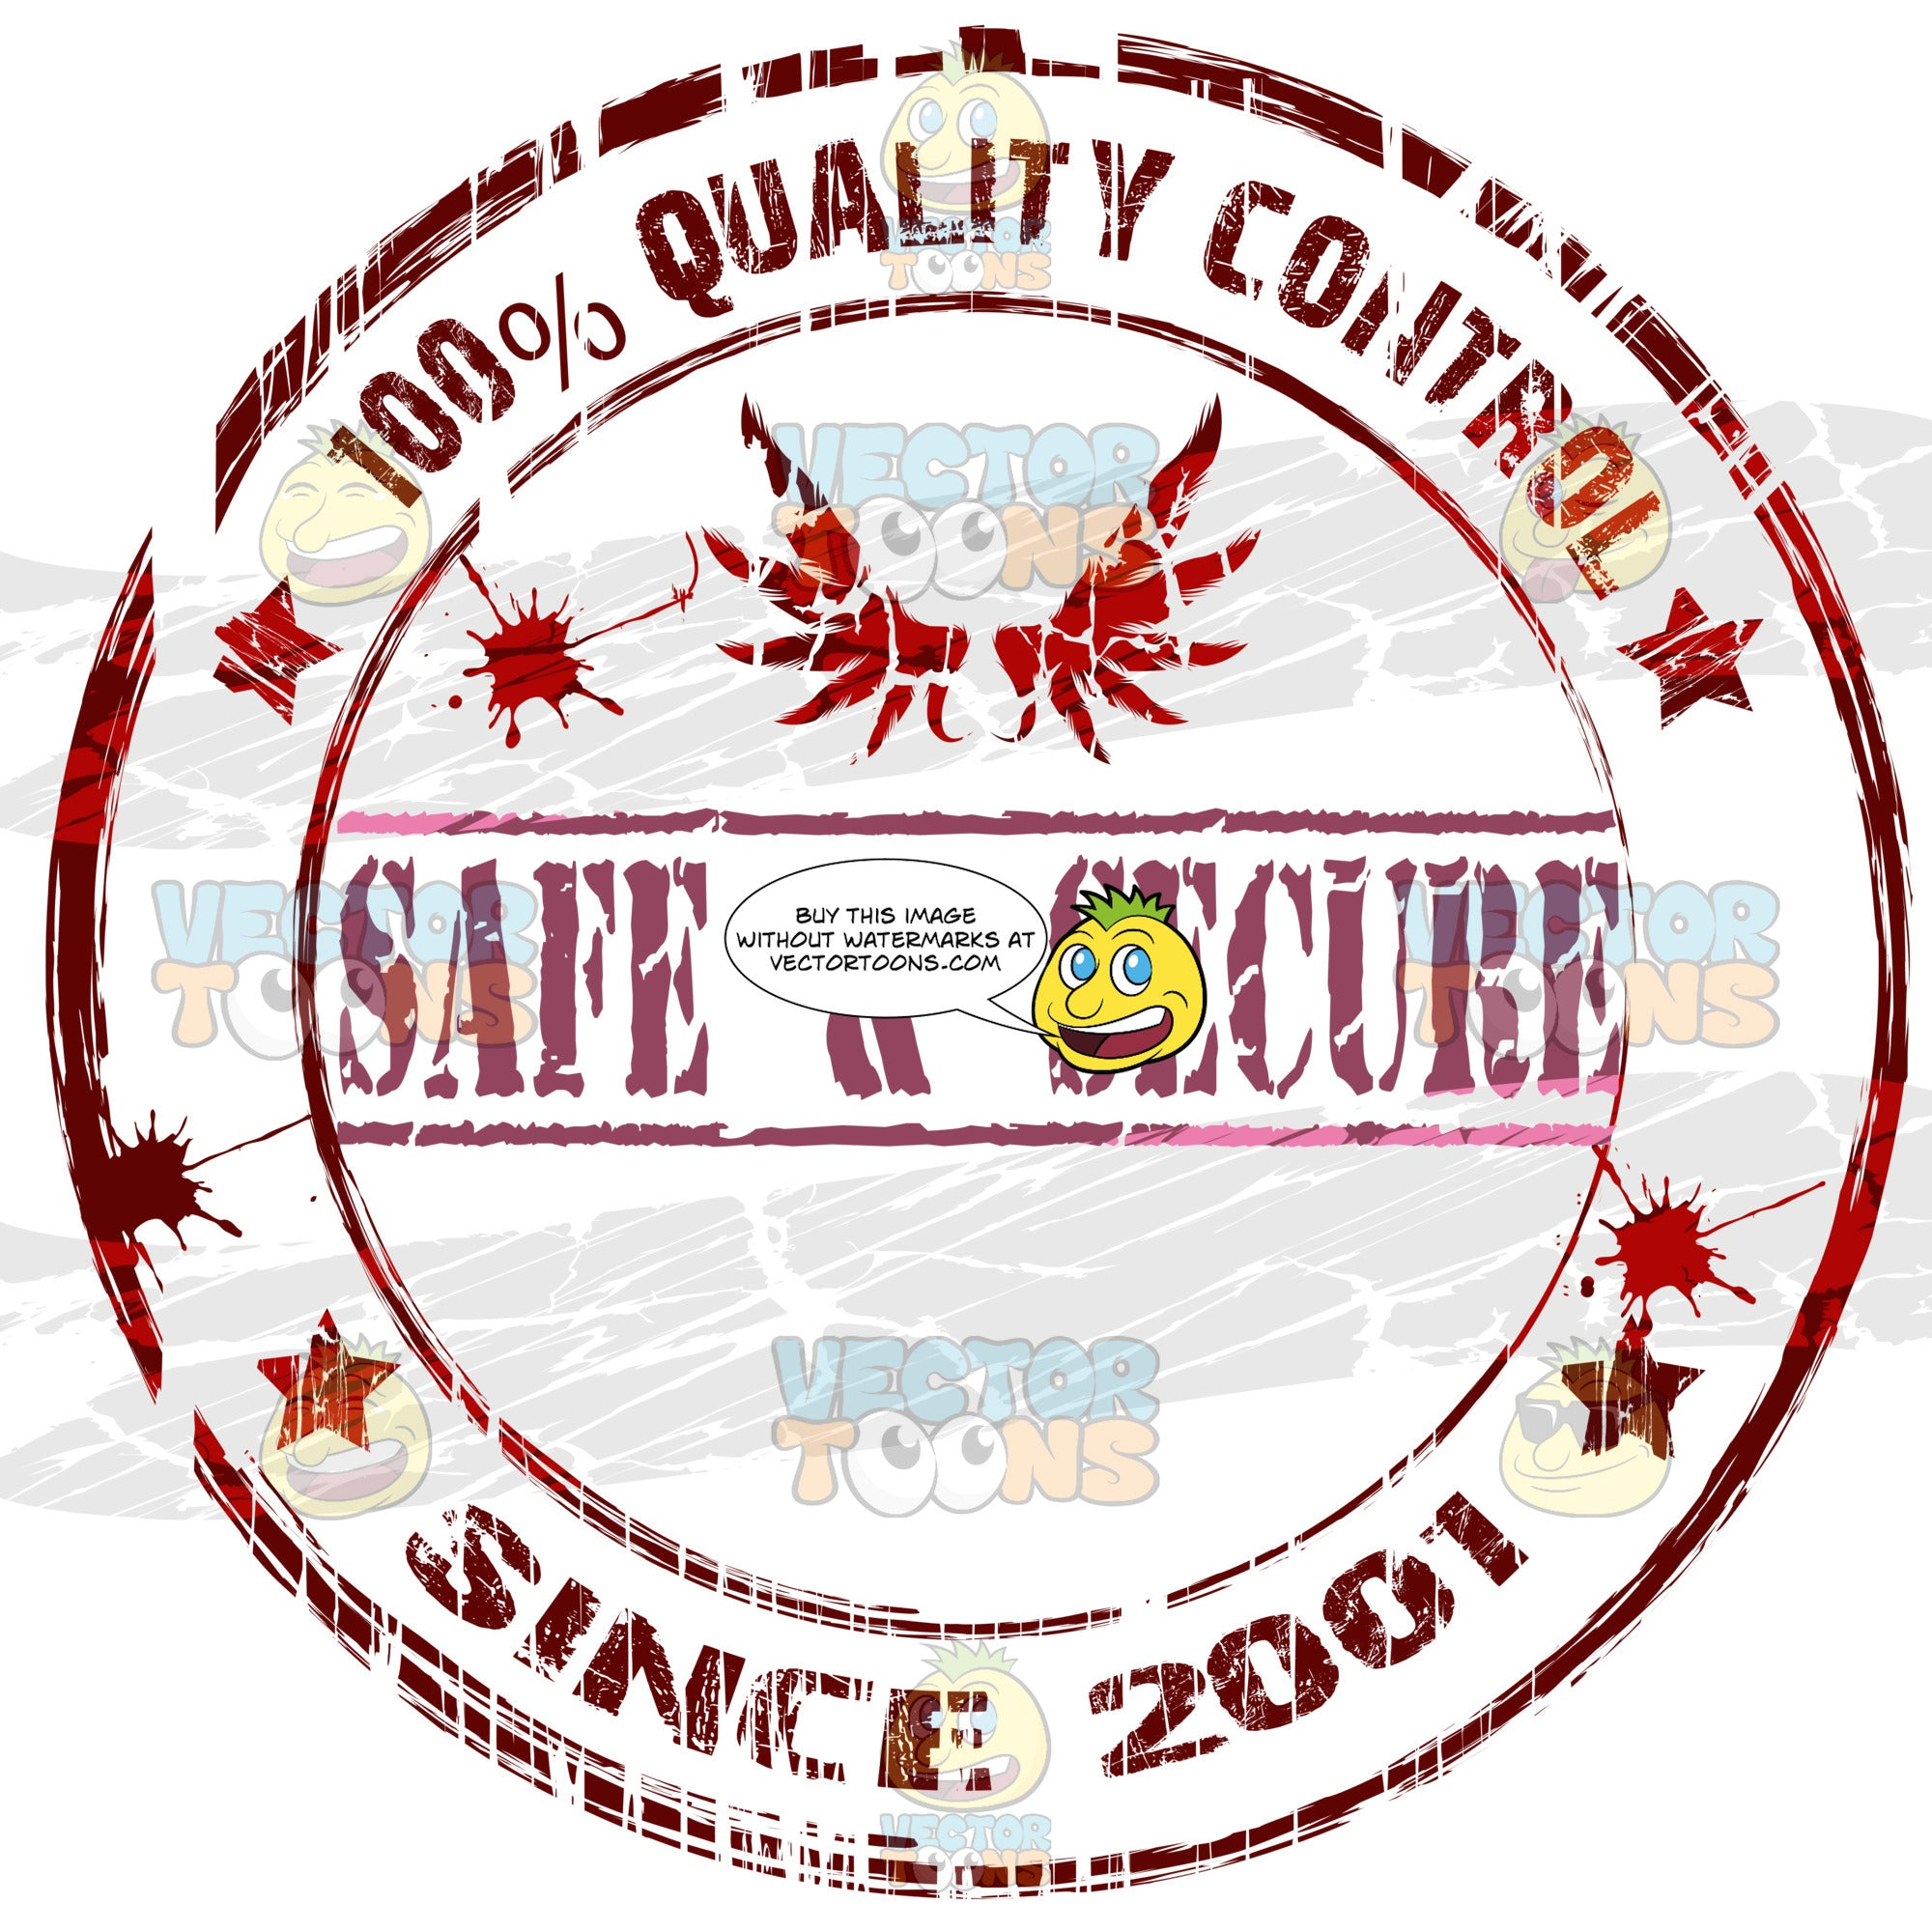 Words Safe Secure Below Bird Wings With 100 Percent Quality Control Typed  Around Circle With Random Ink Splatter Drops And Stars All Done In Deep Red